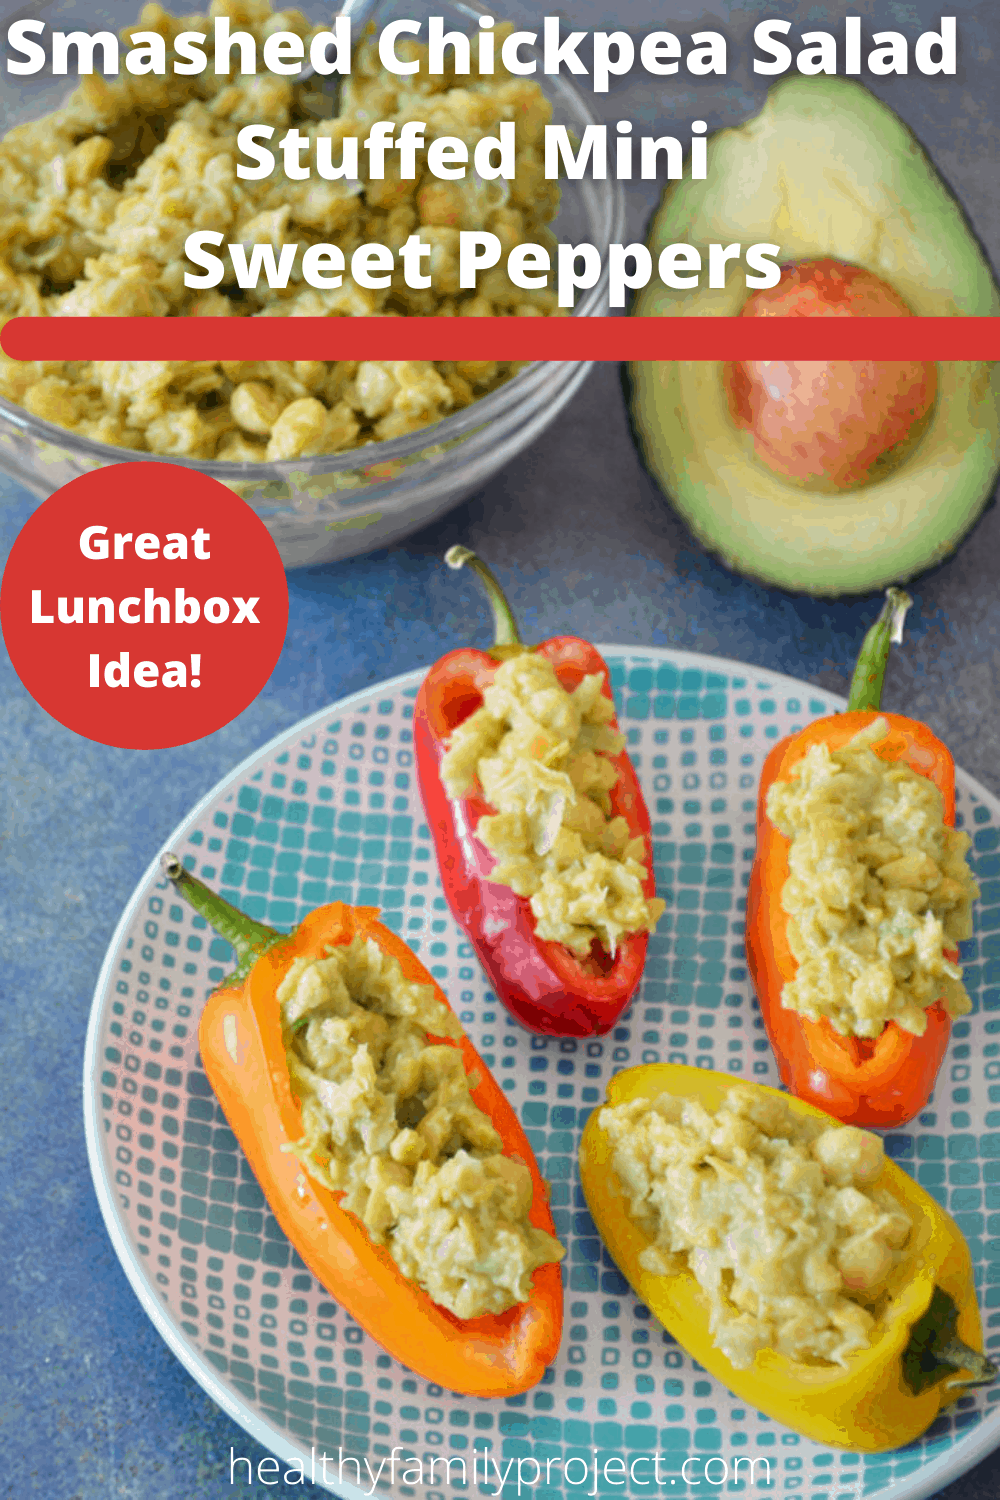 Healthy Smashed Chickpea Salad Stuffed Mini Sweet Peppers